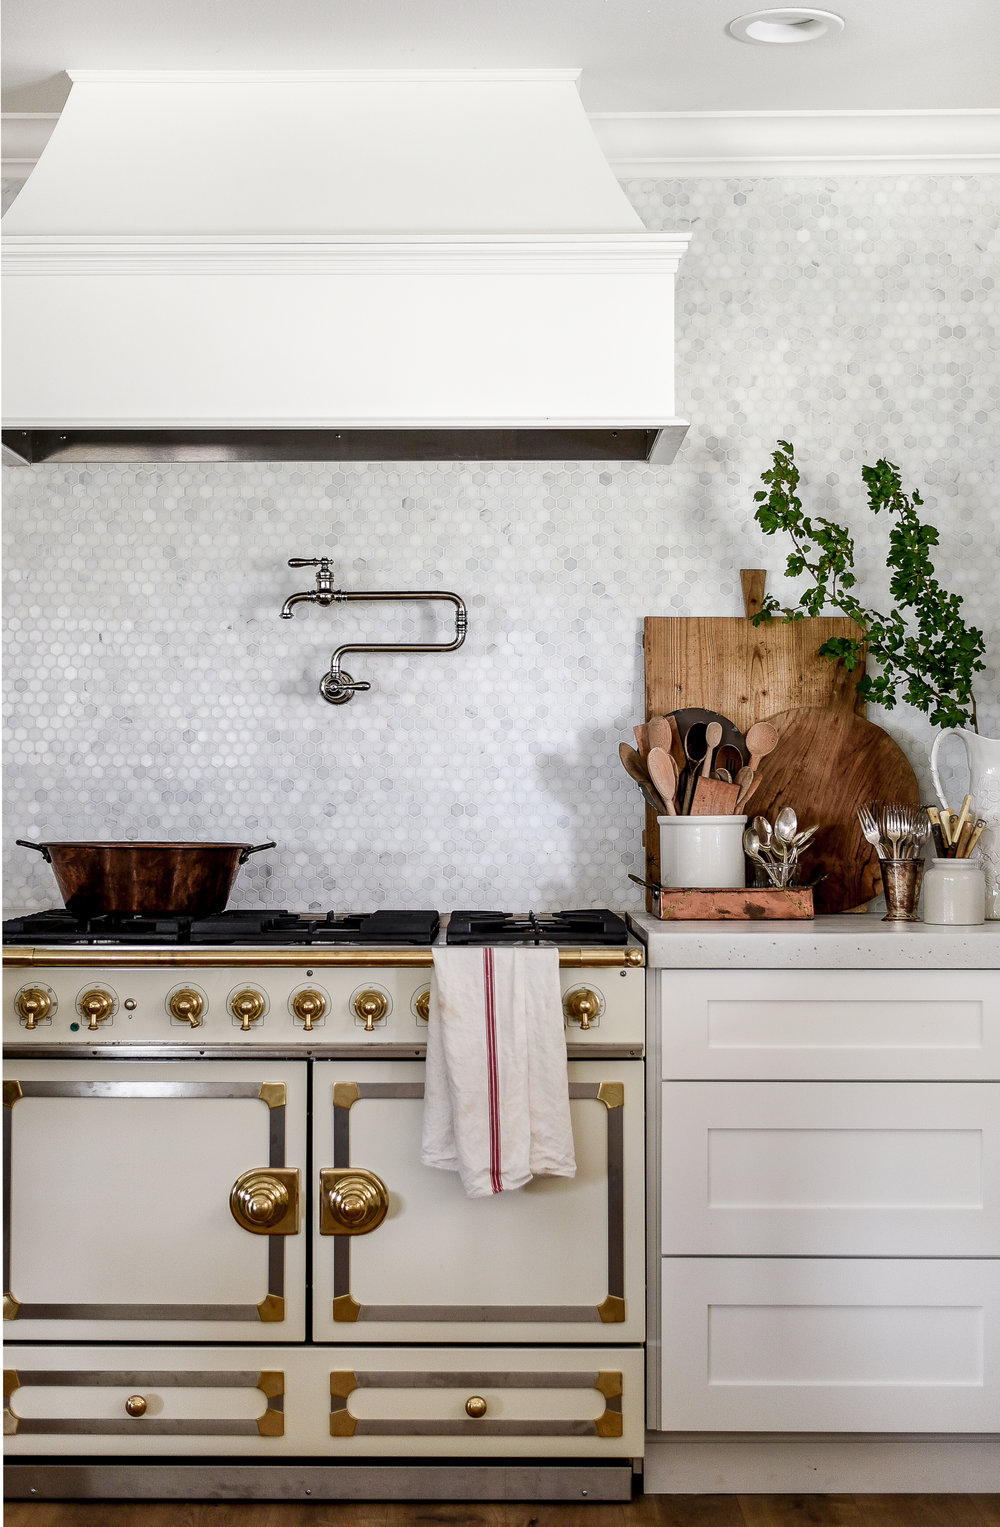 Kohler's artifacts pot filler & la cornue stove - a remodeled farmhouse kitchen | boxwoodavenue.com